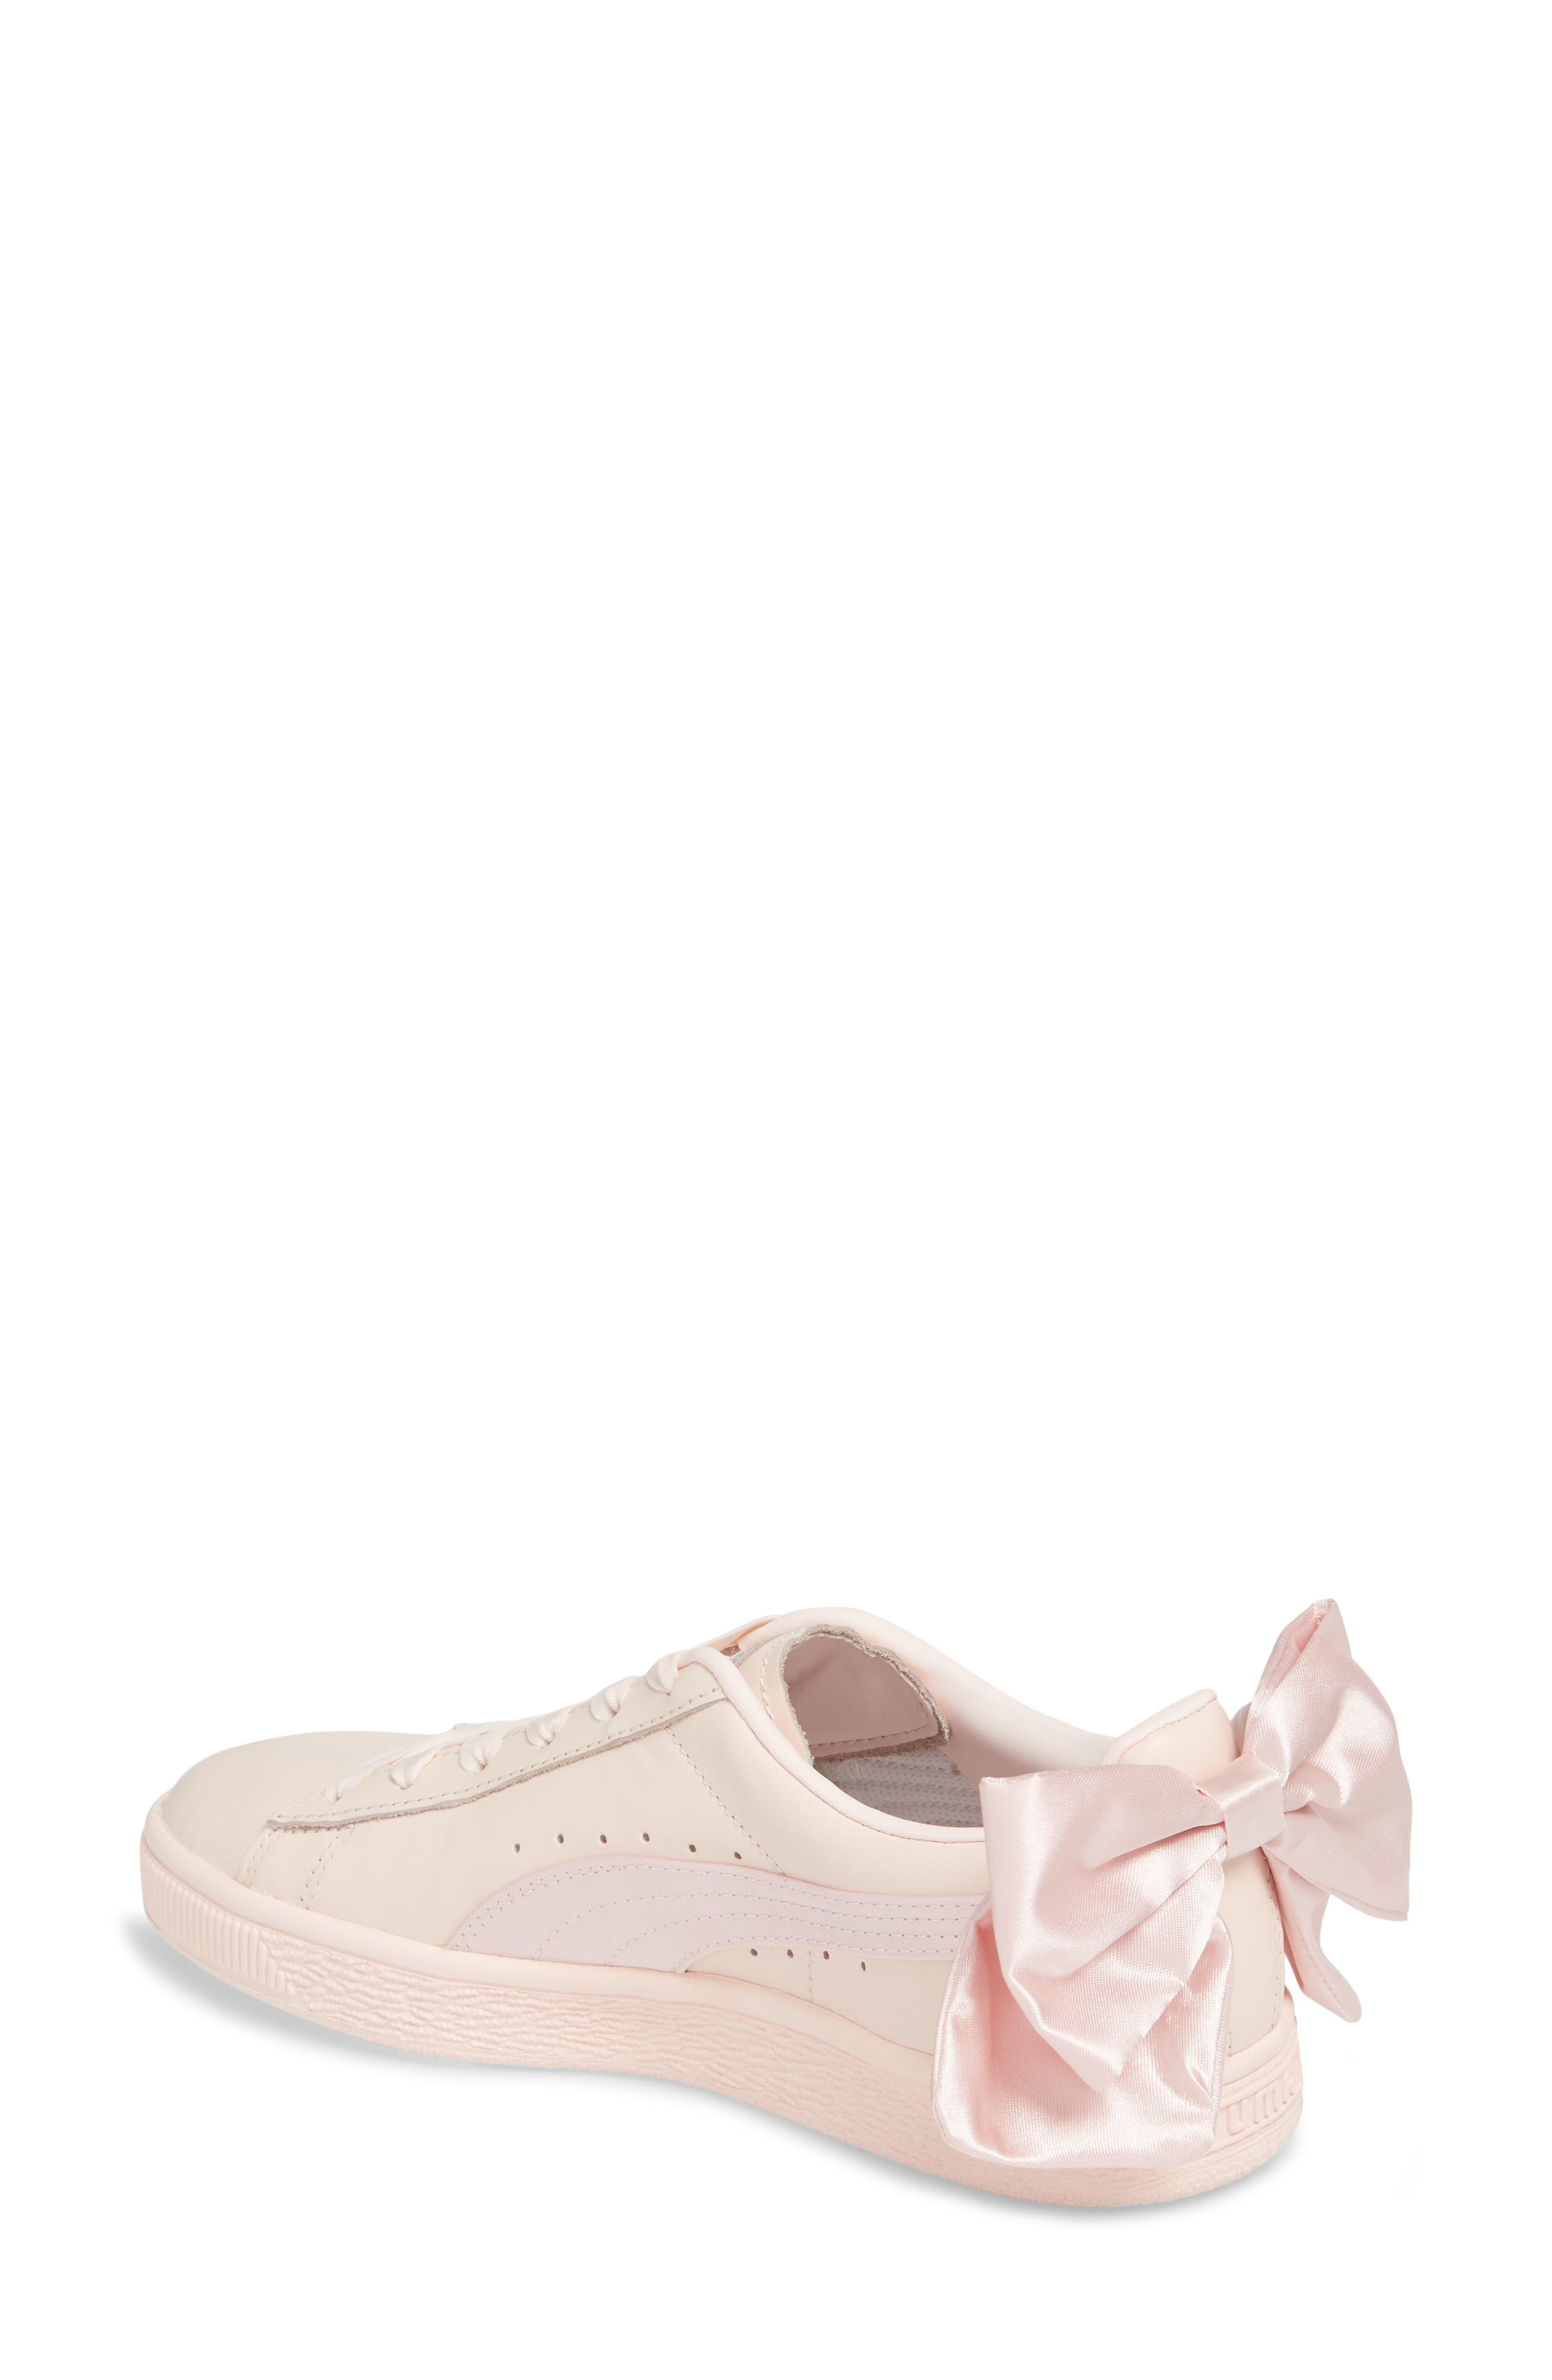 Basket Bow Sneaker,                             Alternate thumbnail 2, color,                             PEARL/ PEARL